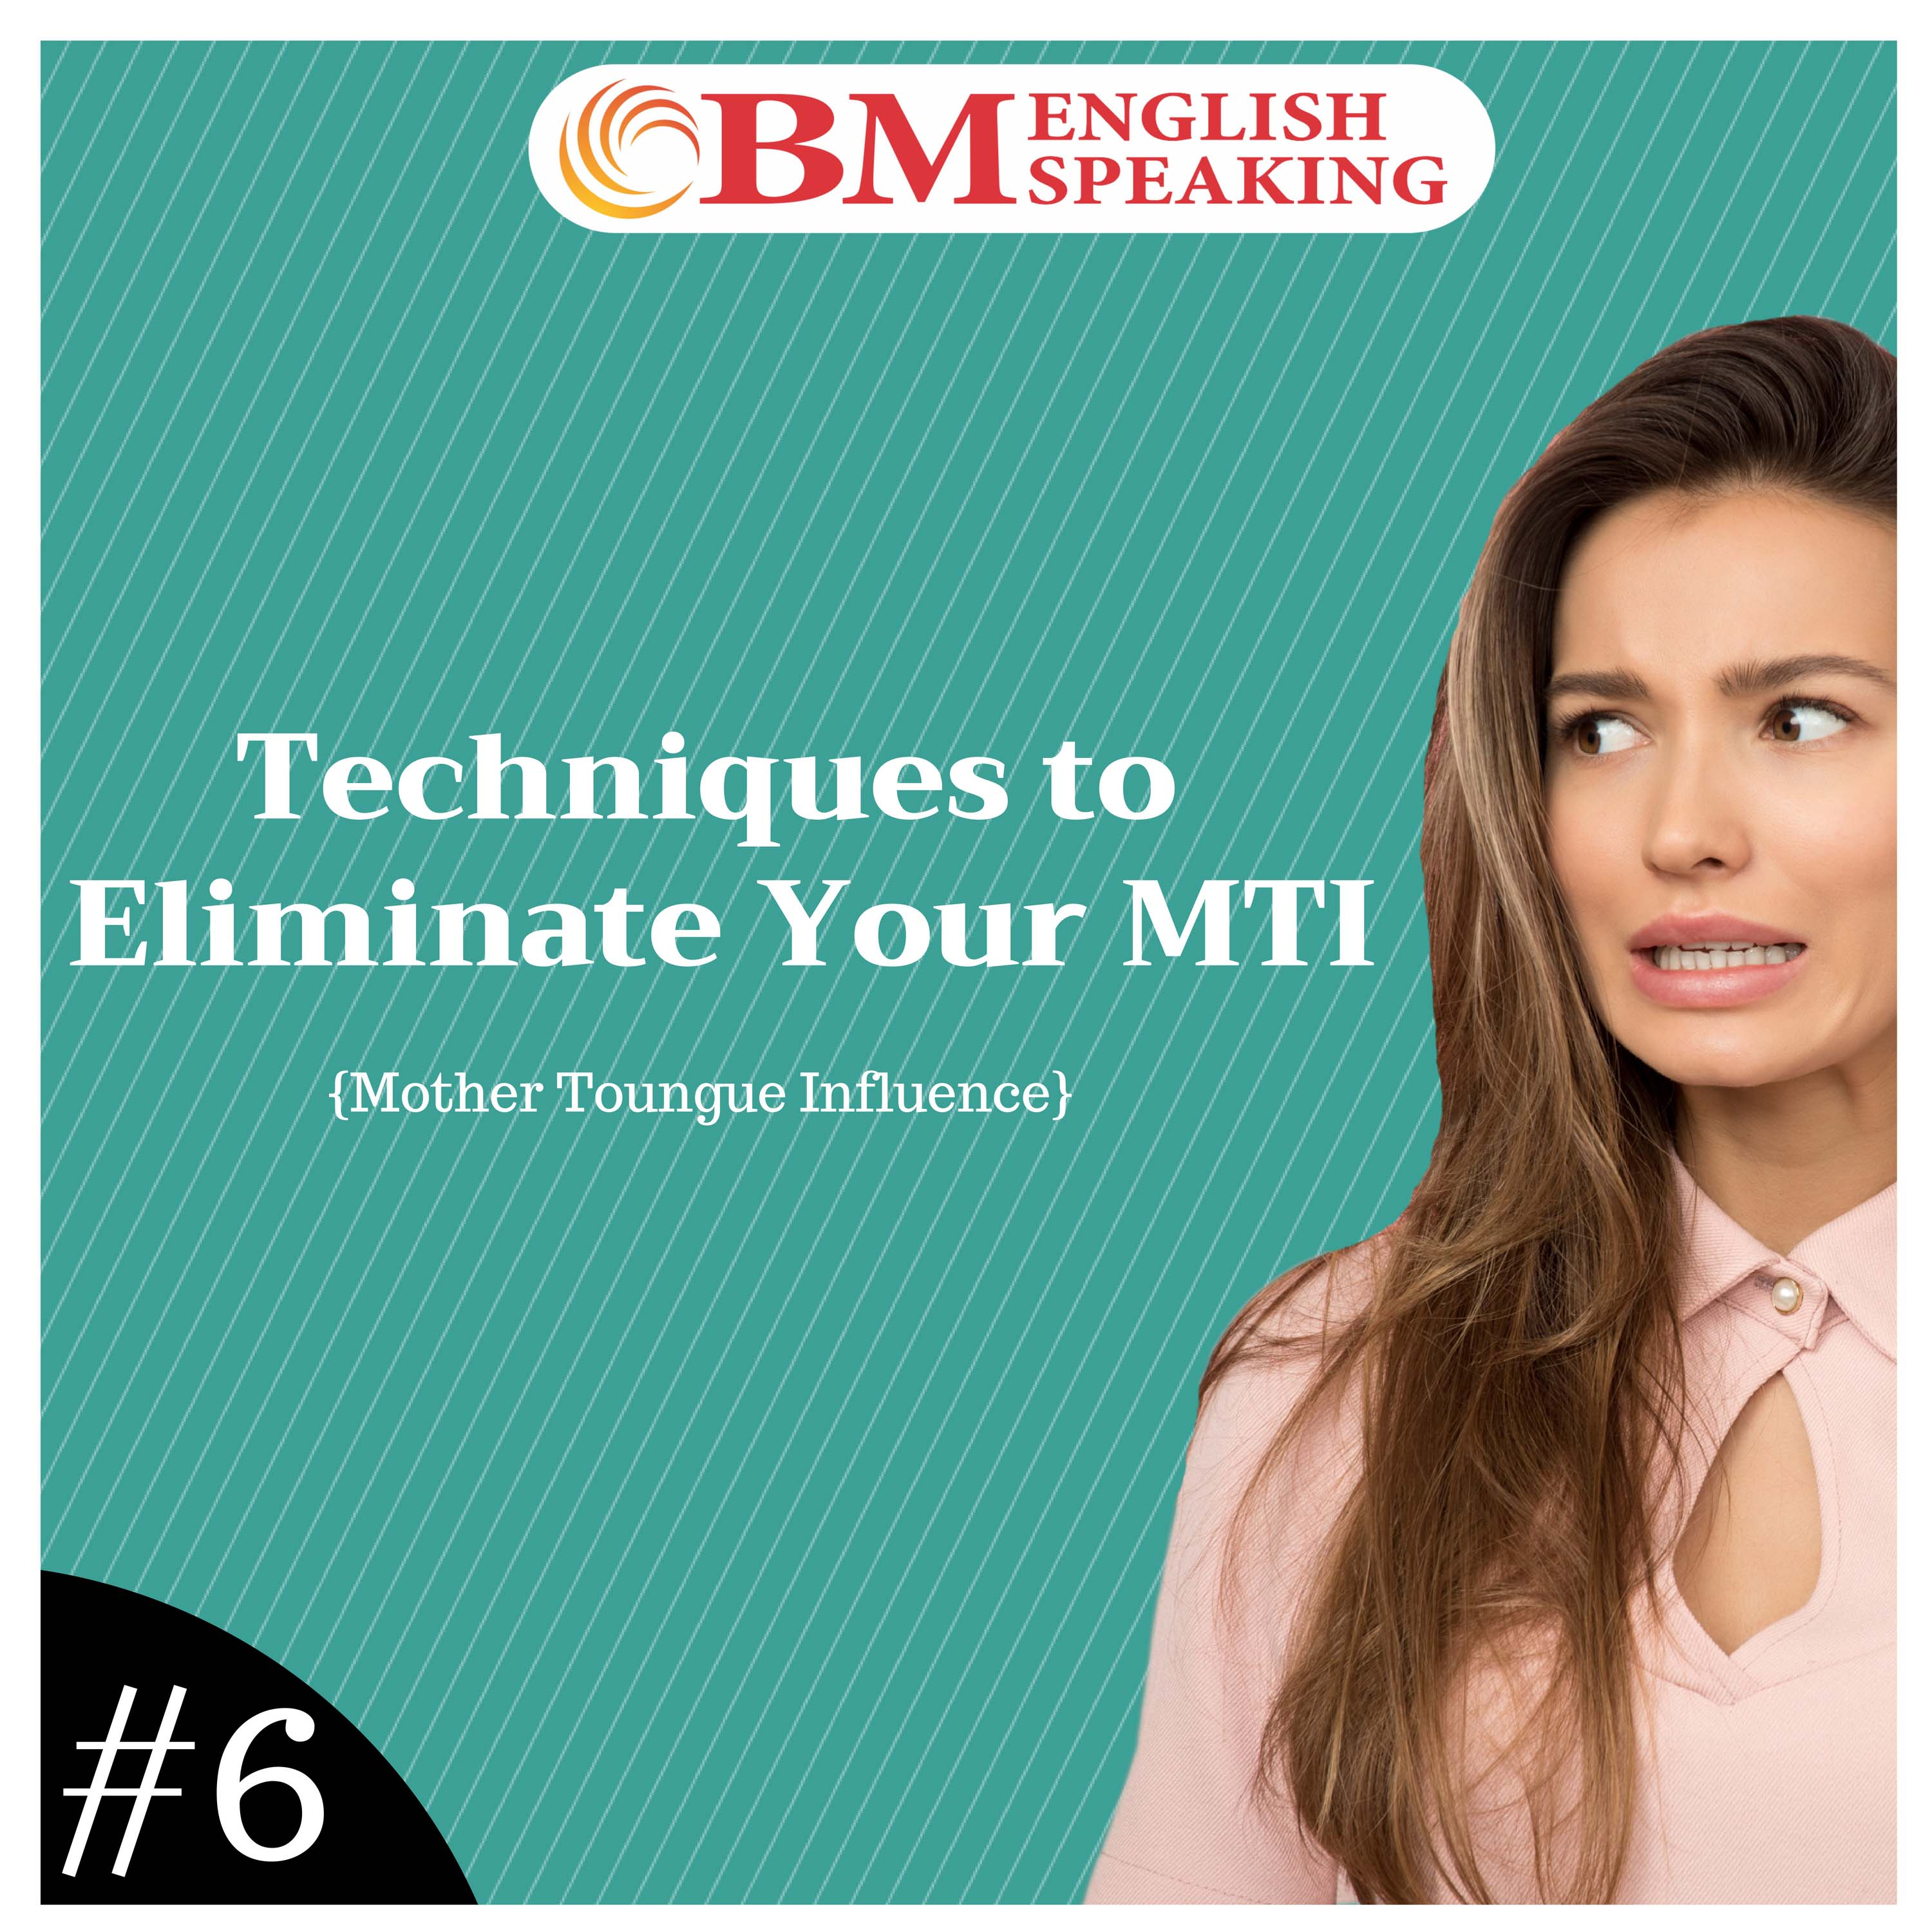 Techniques to Eliminate Your MTI